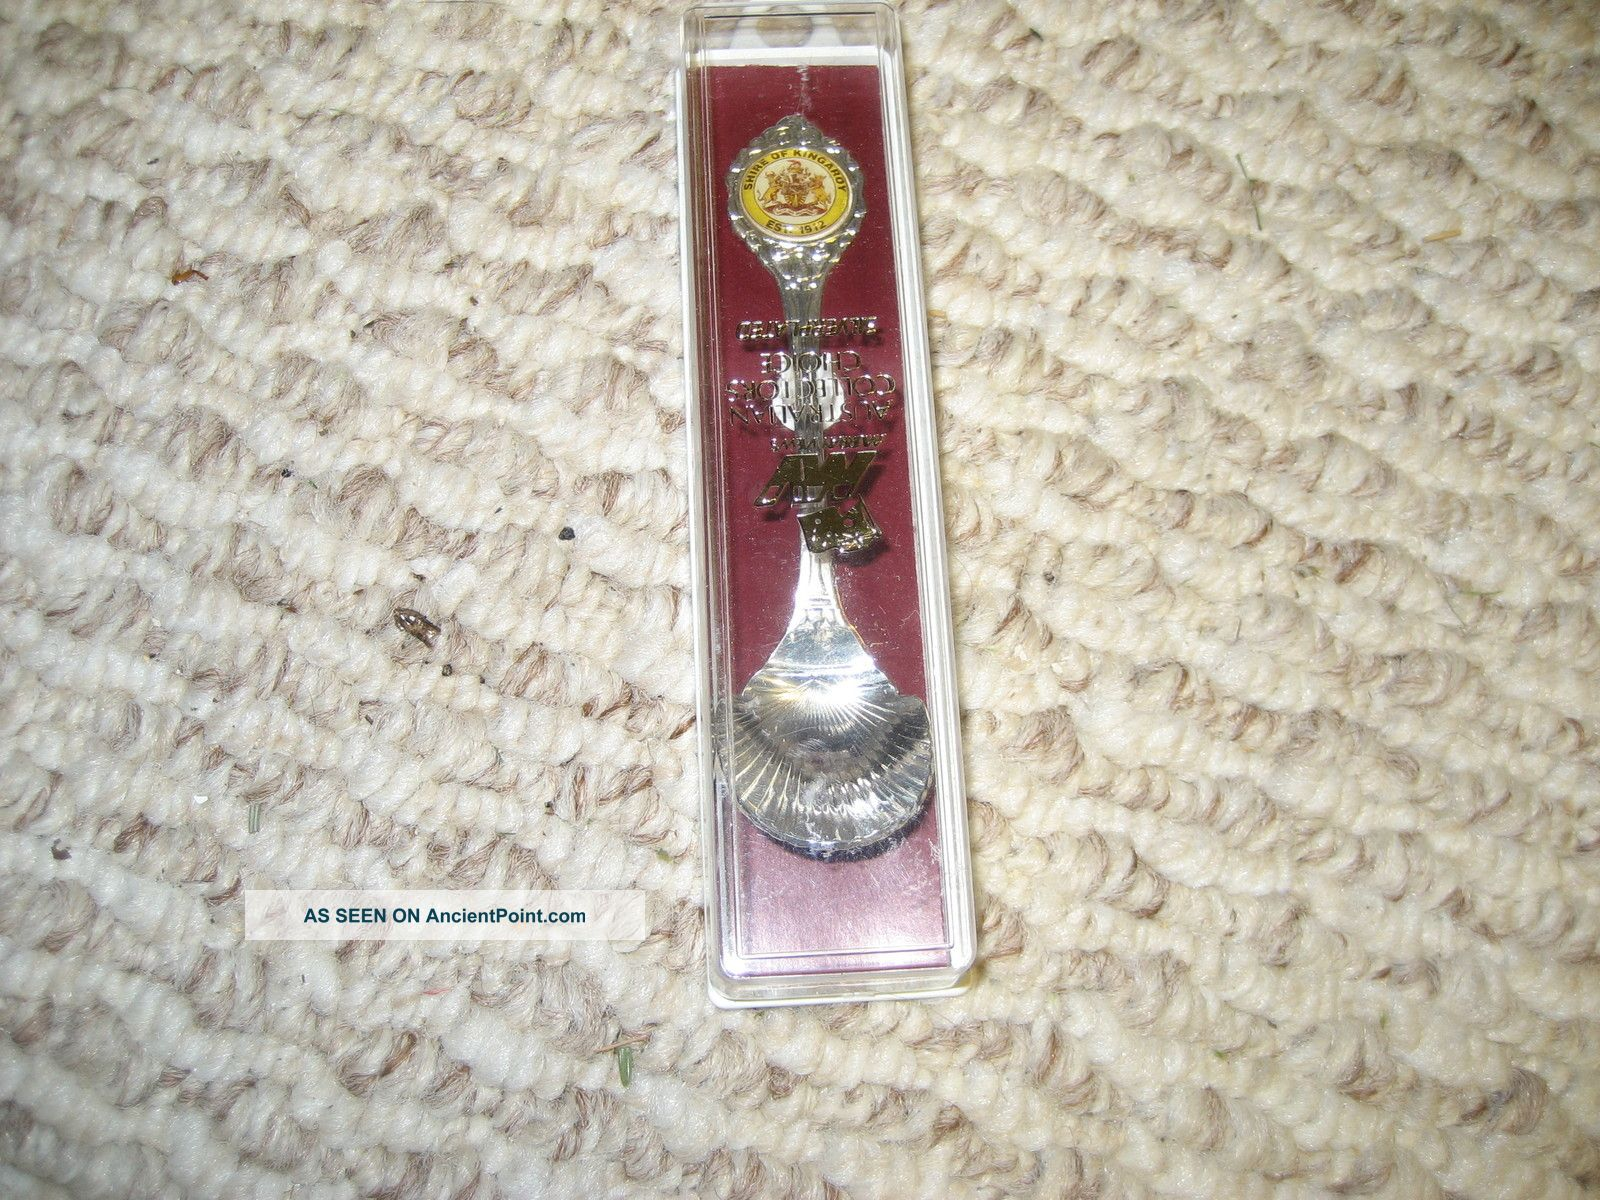 Austrailian Collectors Choice Siver Plated Boxed Spoon Souvenir Spoons photo